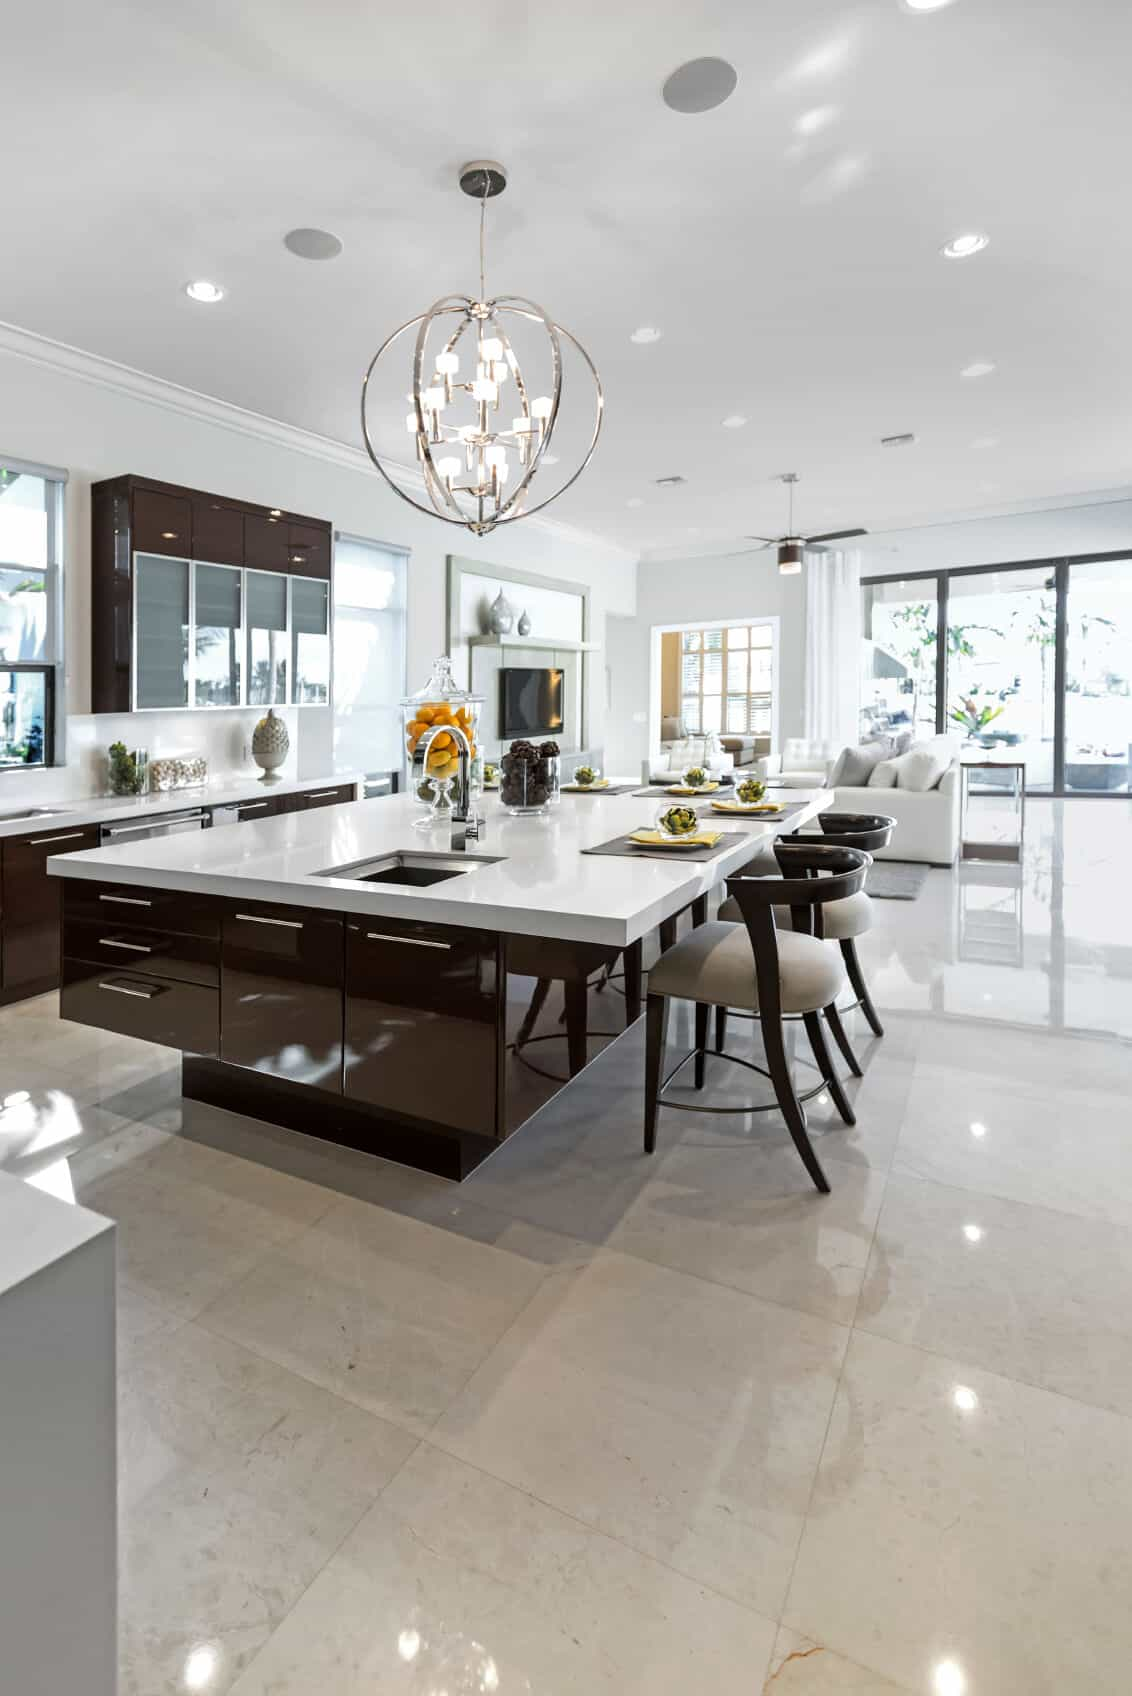 Large Modern White And Dark Brown Kitchen With Huge Island Breakfast Bar